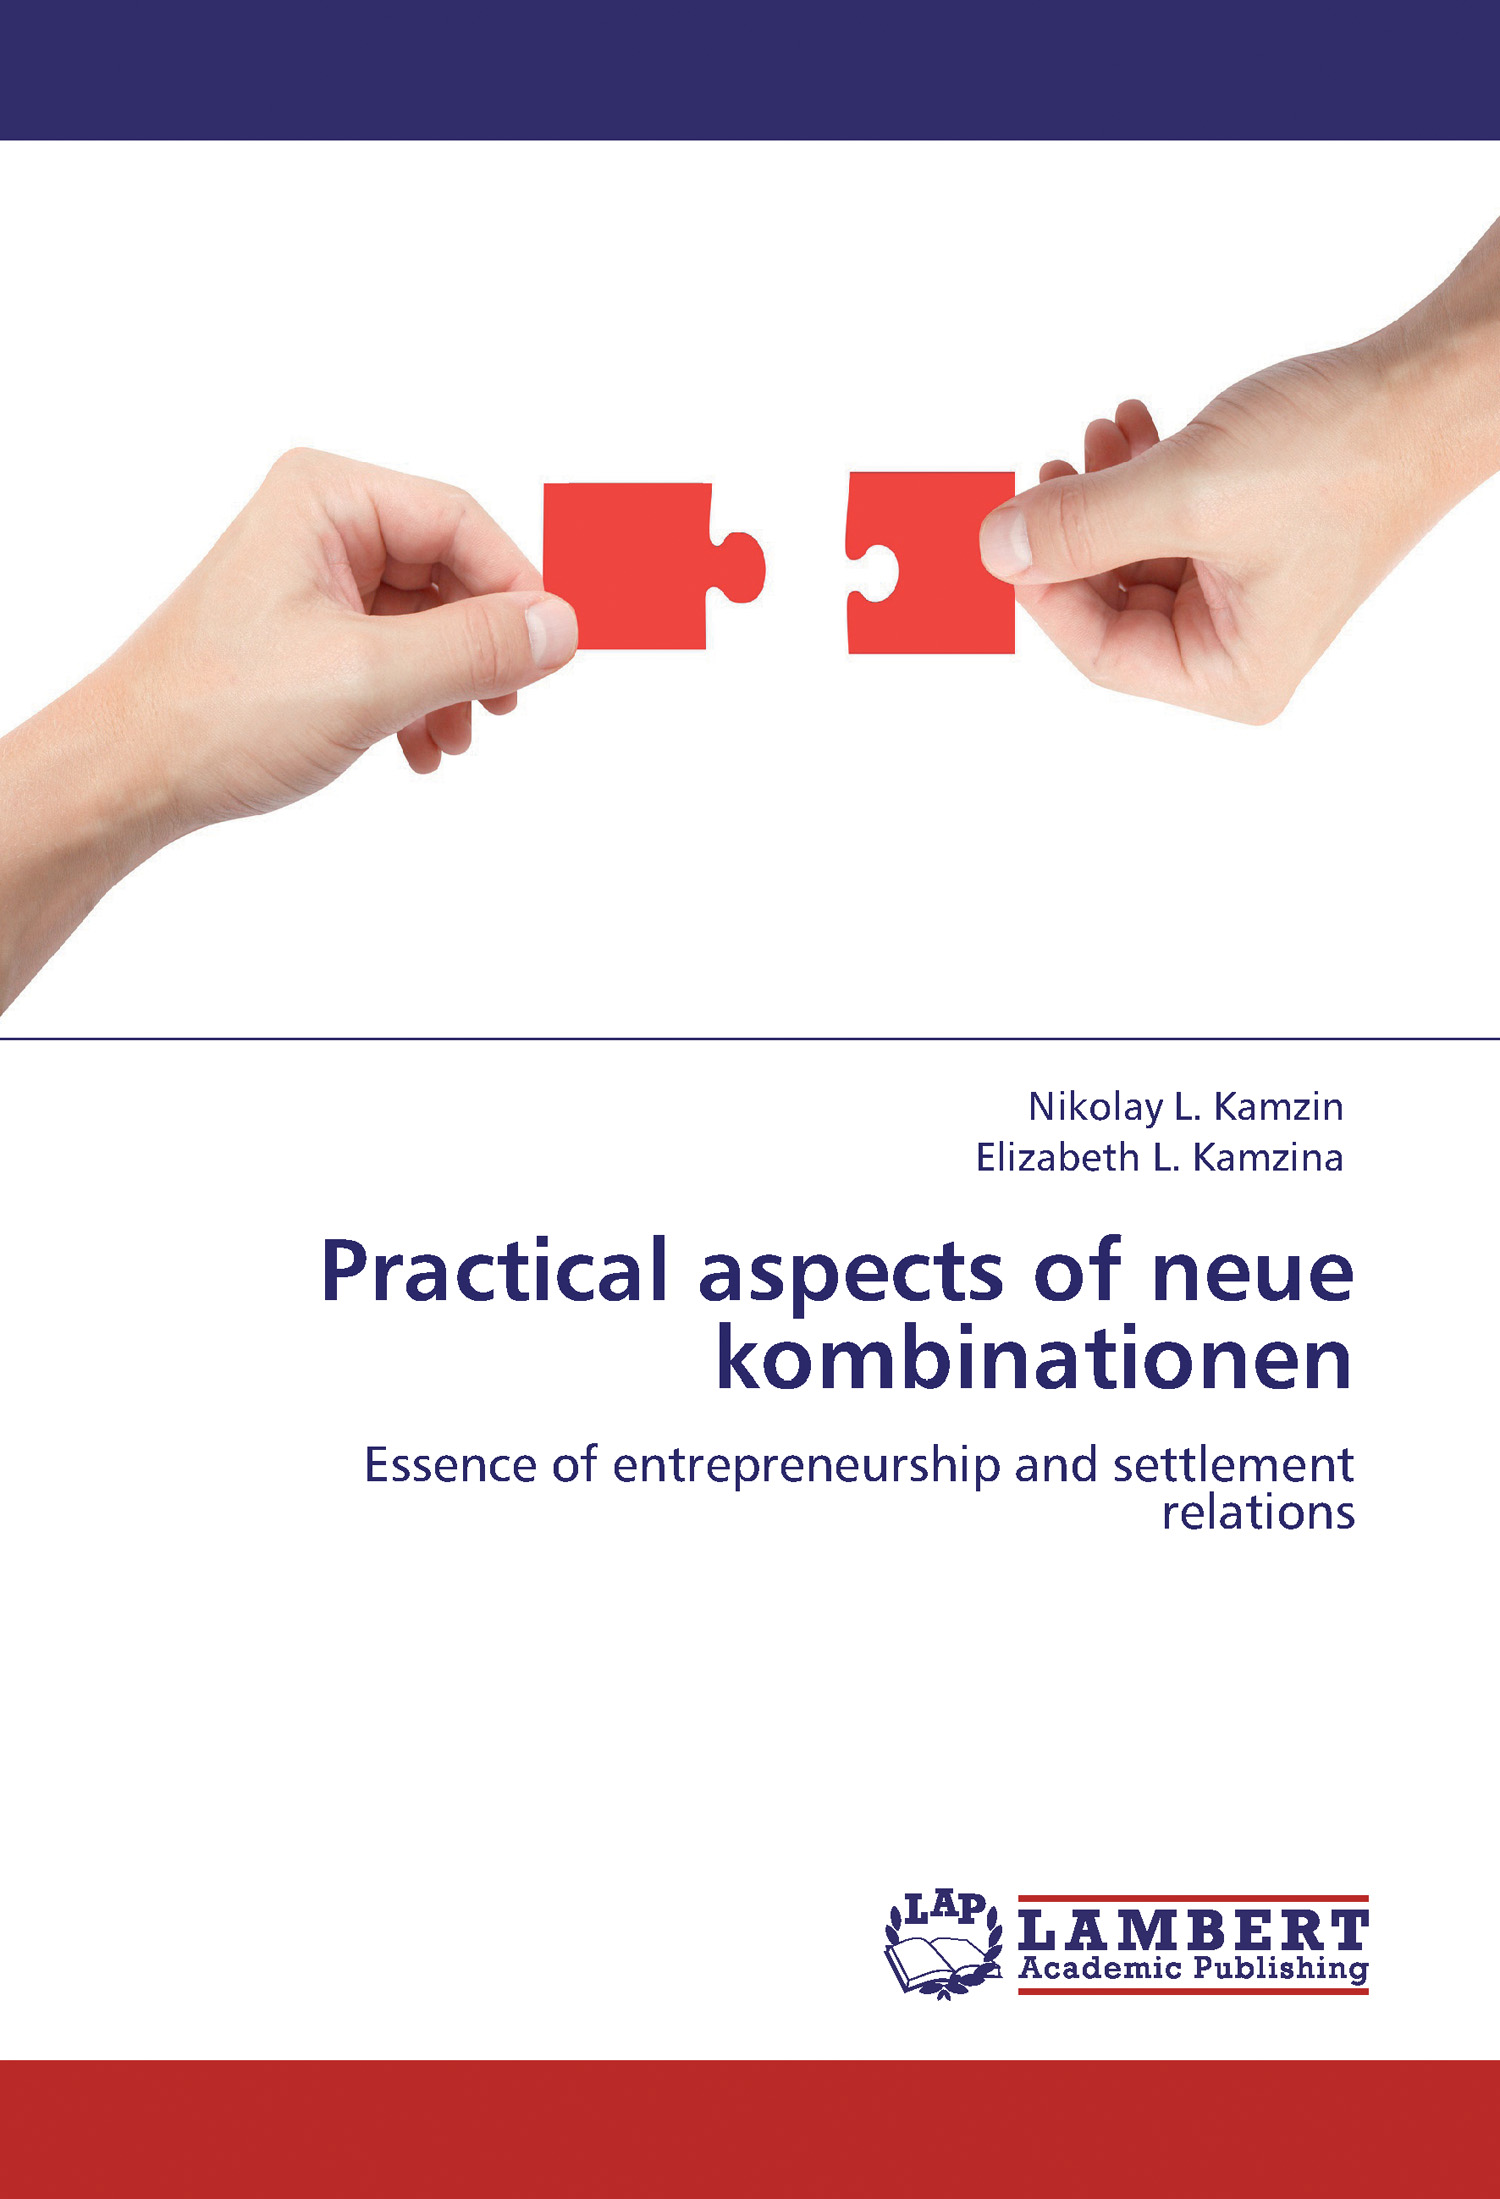 Practical aspects of neue kombinationen. Essence of entrepreneurship and settlement relations